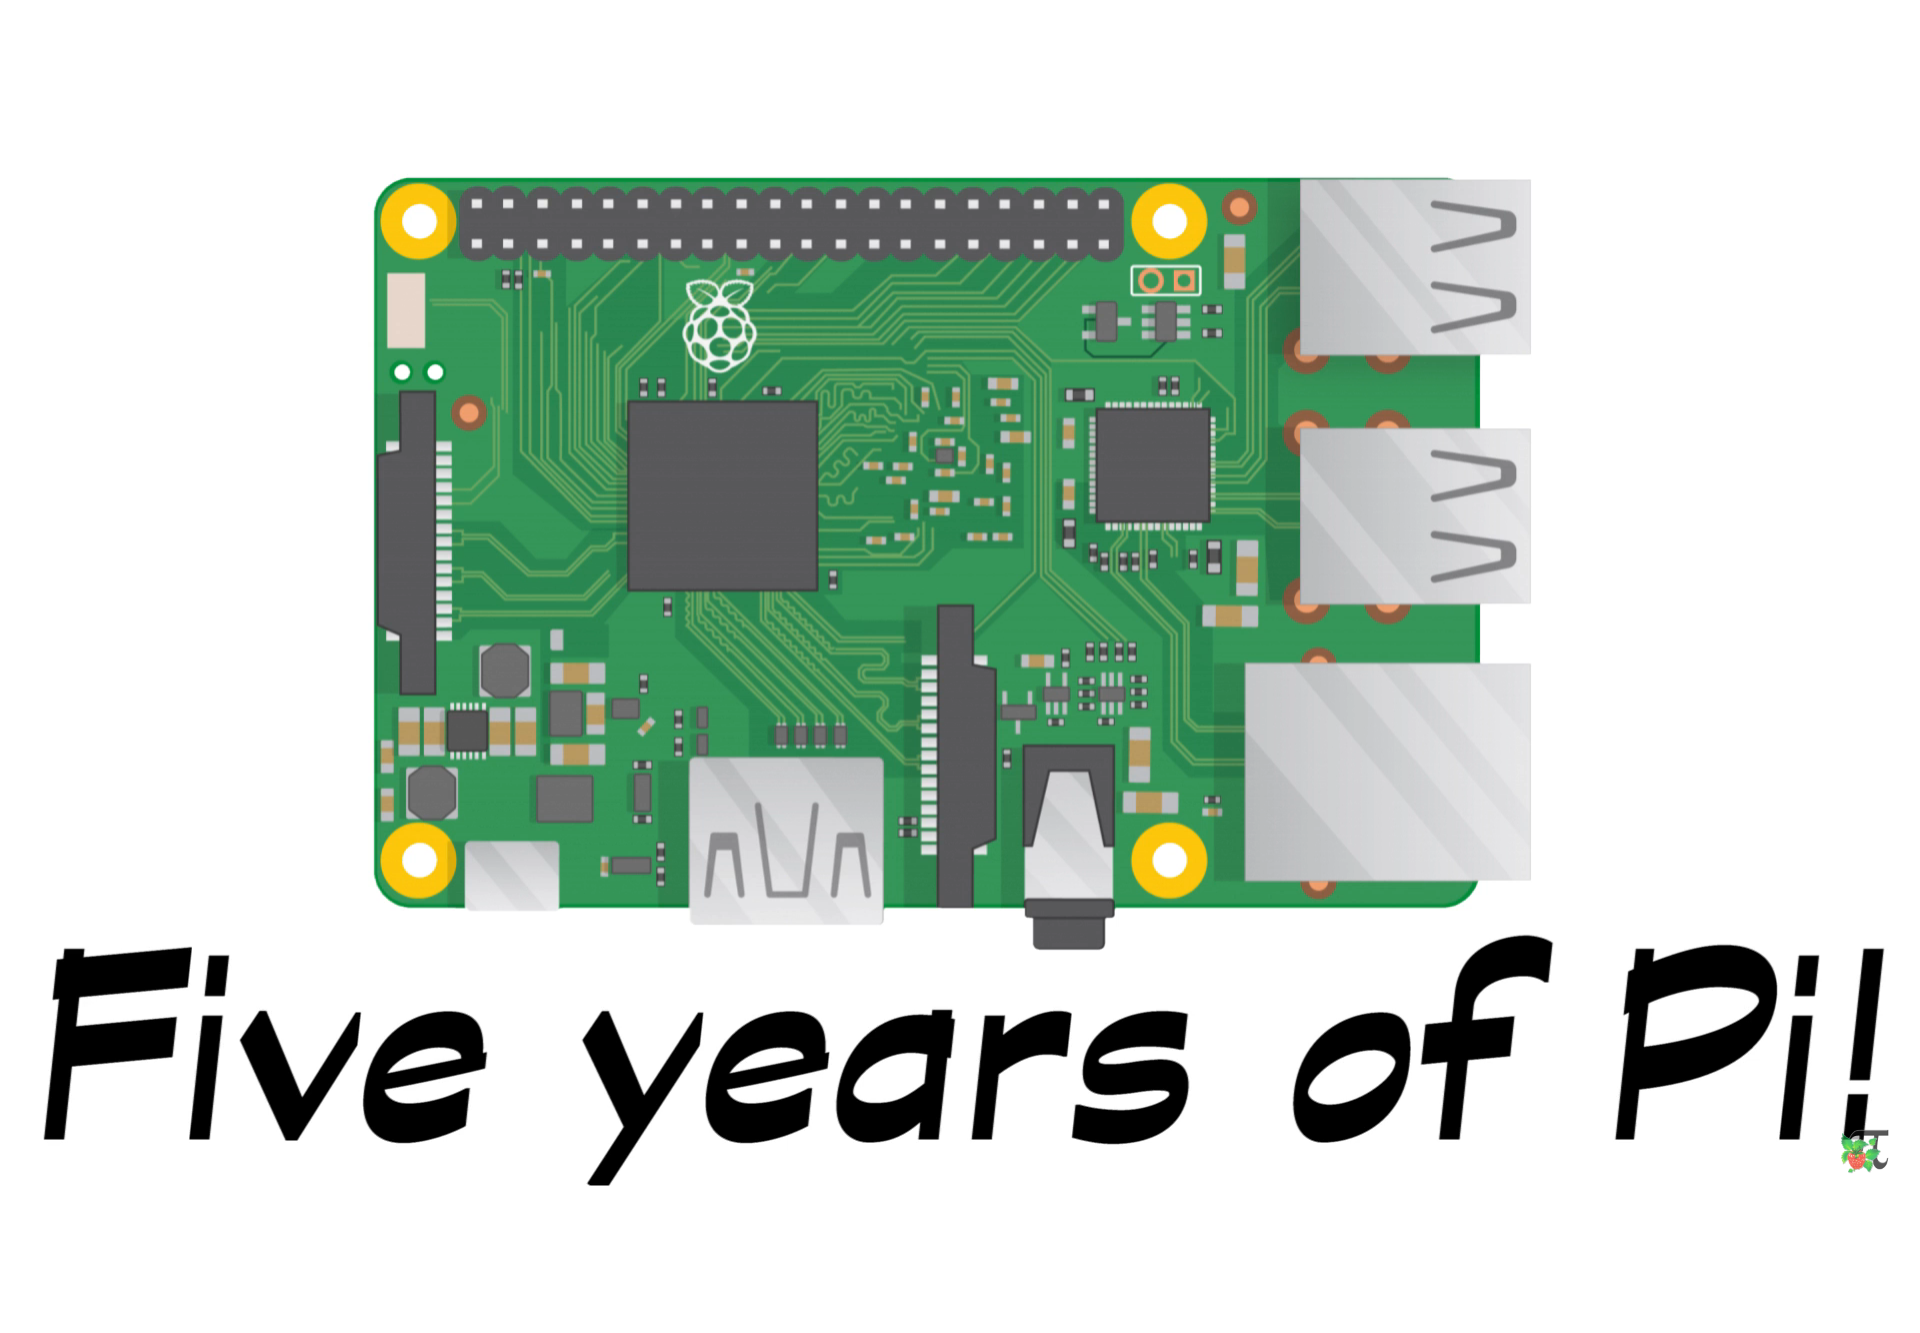 Video: Five Years of Pi